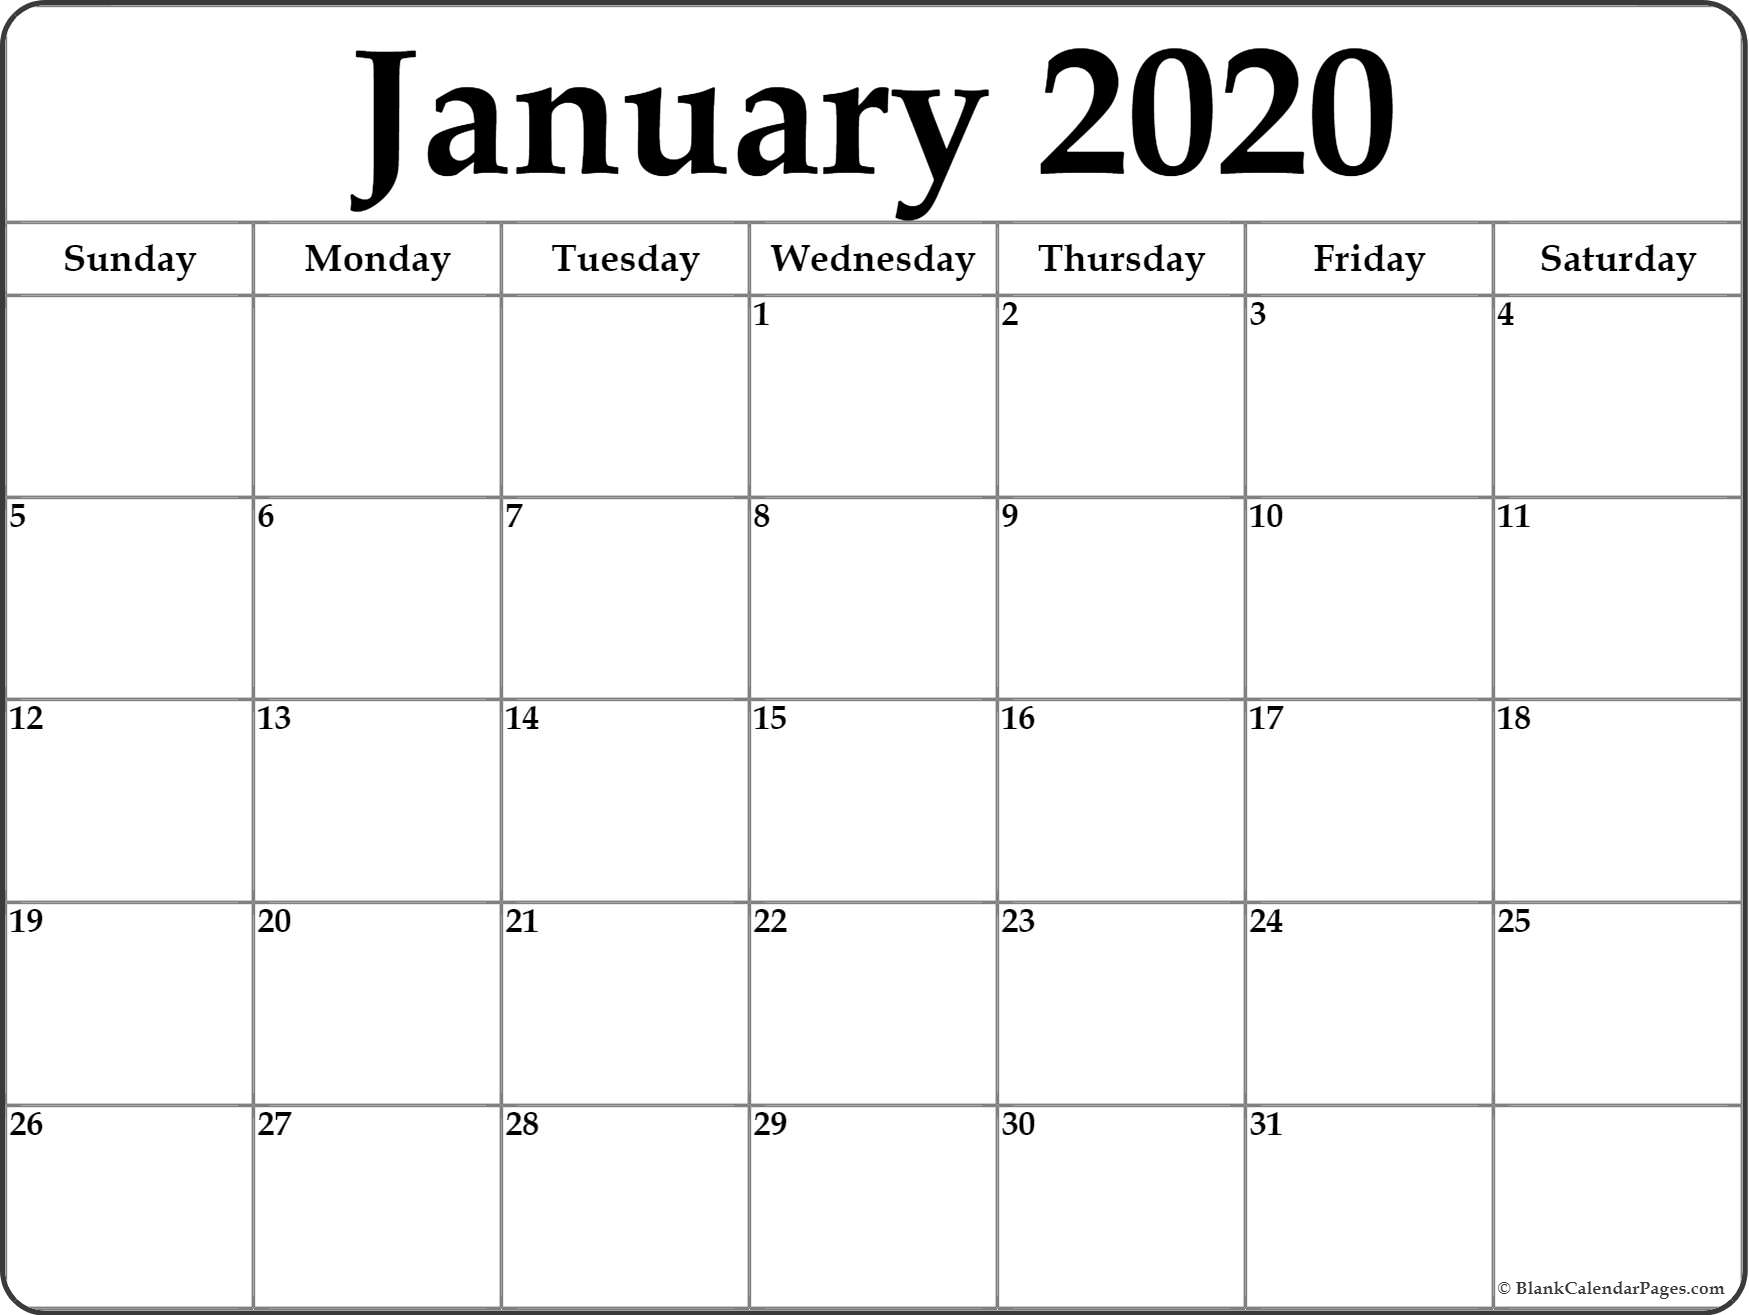 Free Printable Calendar 2020 Monthly - Wpa.wpart.co